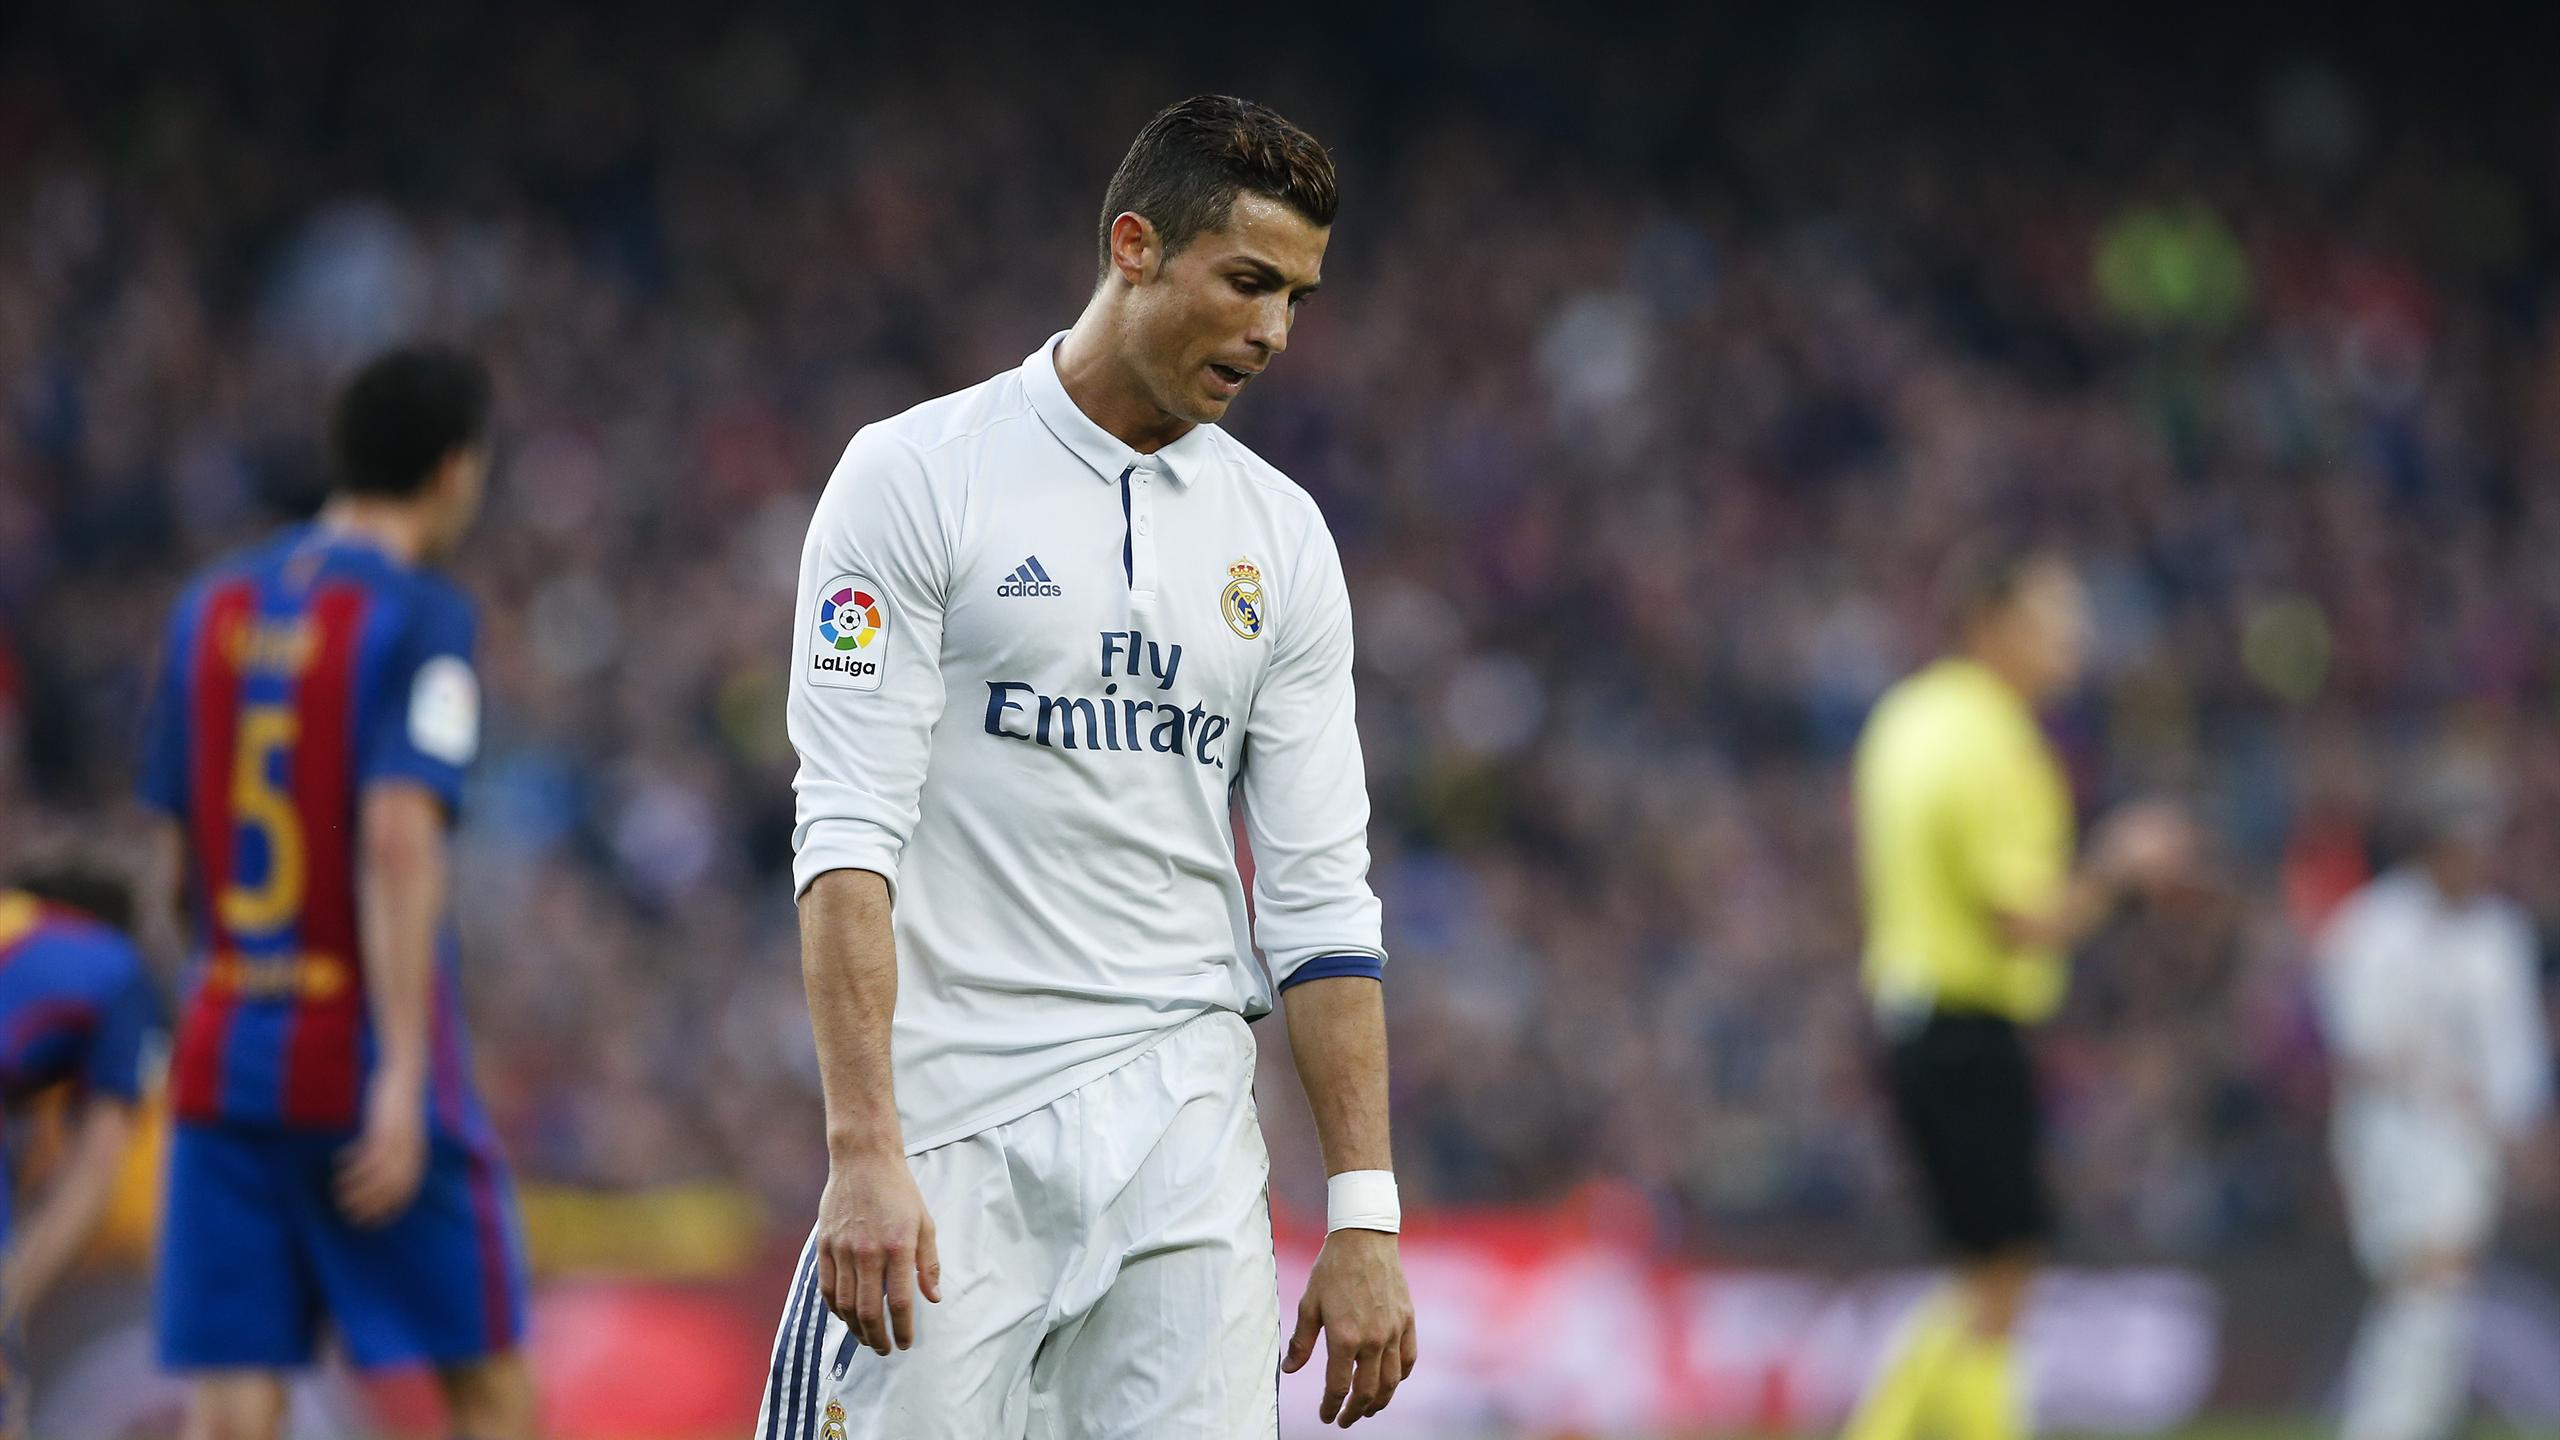 """Real Madrid's Cristiano Ronaldo reacts after missing a chance to score during the """"Clasico"""""""